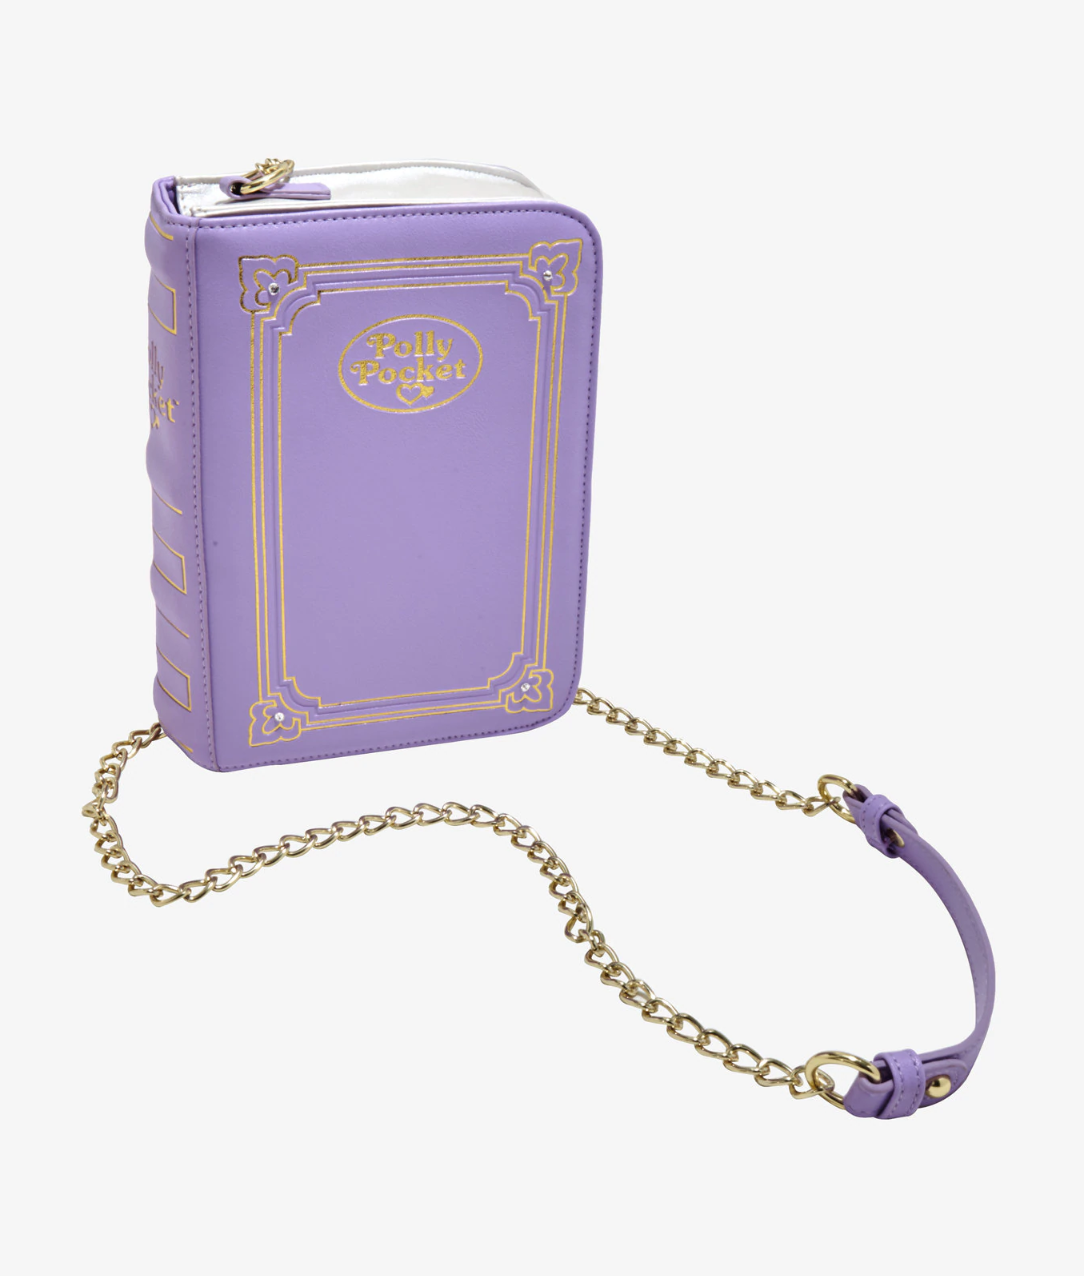 Polly Pocket Book Crossbody